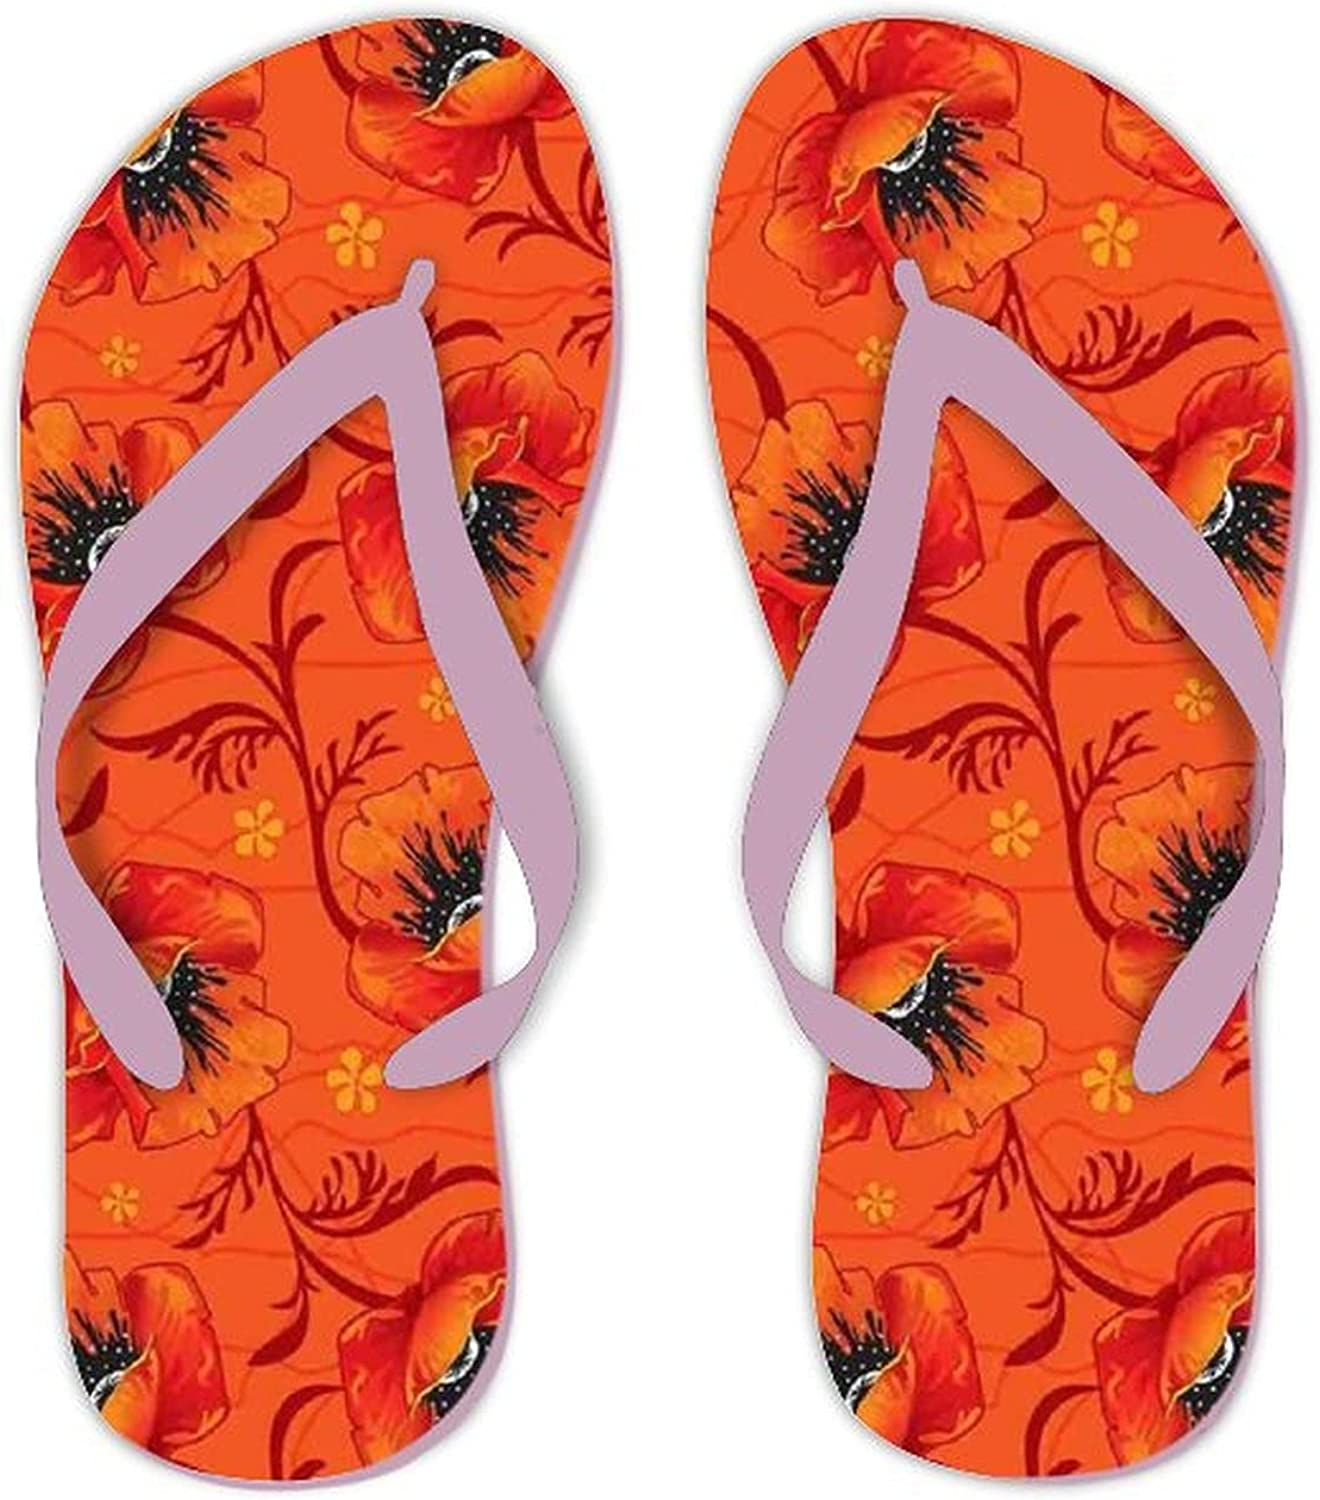 Comfortable Popular brand in the world Beach Pool Tulsa Mall Shoes Lightweight Sandals Party Slippers